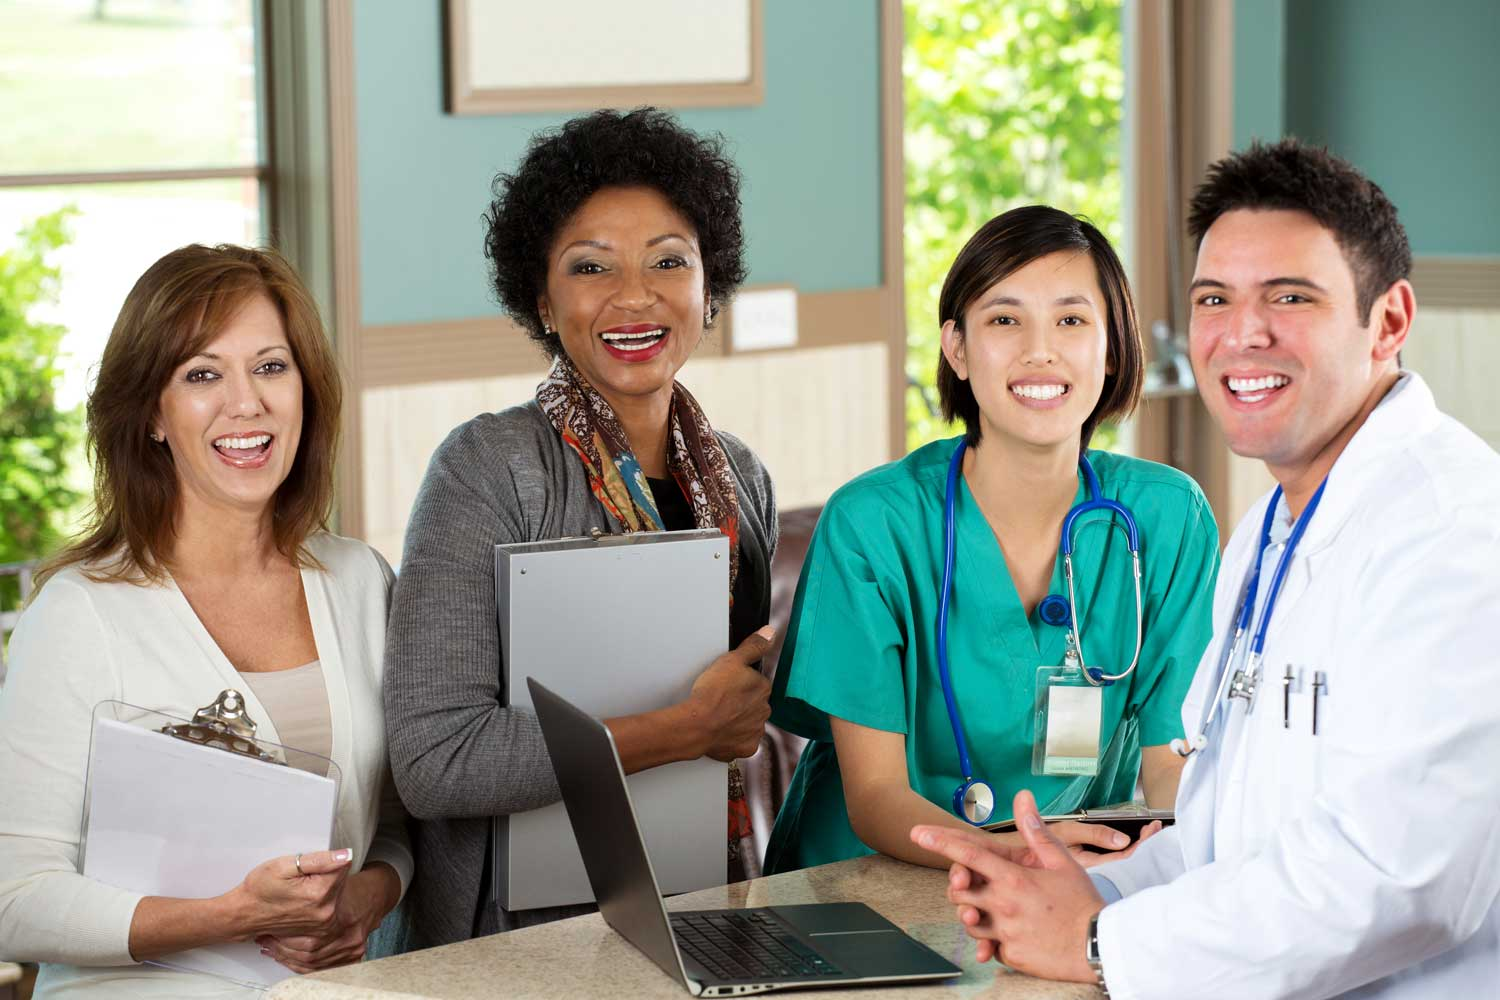 Customer Service Training for Healthcare professionals